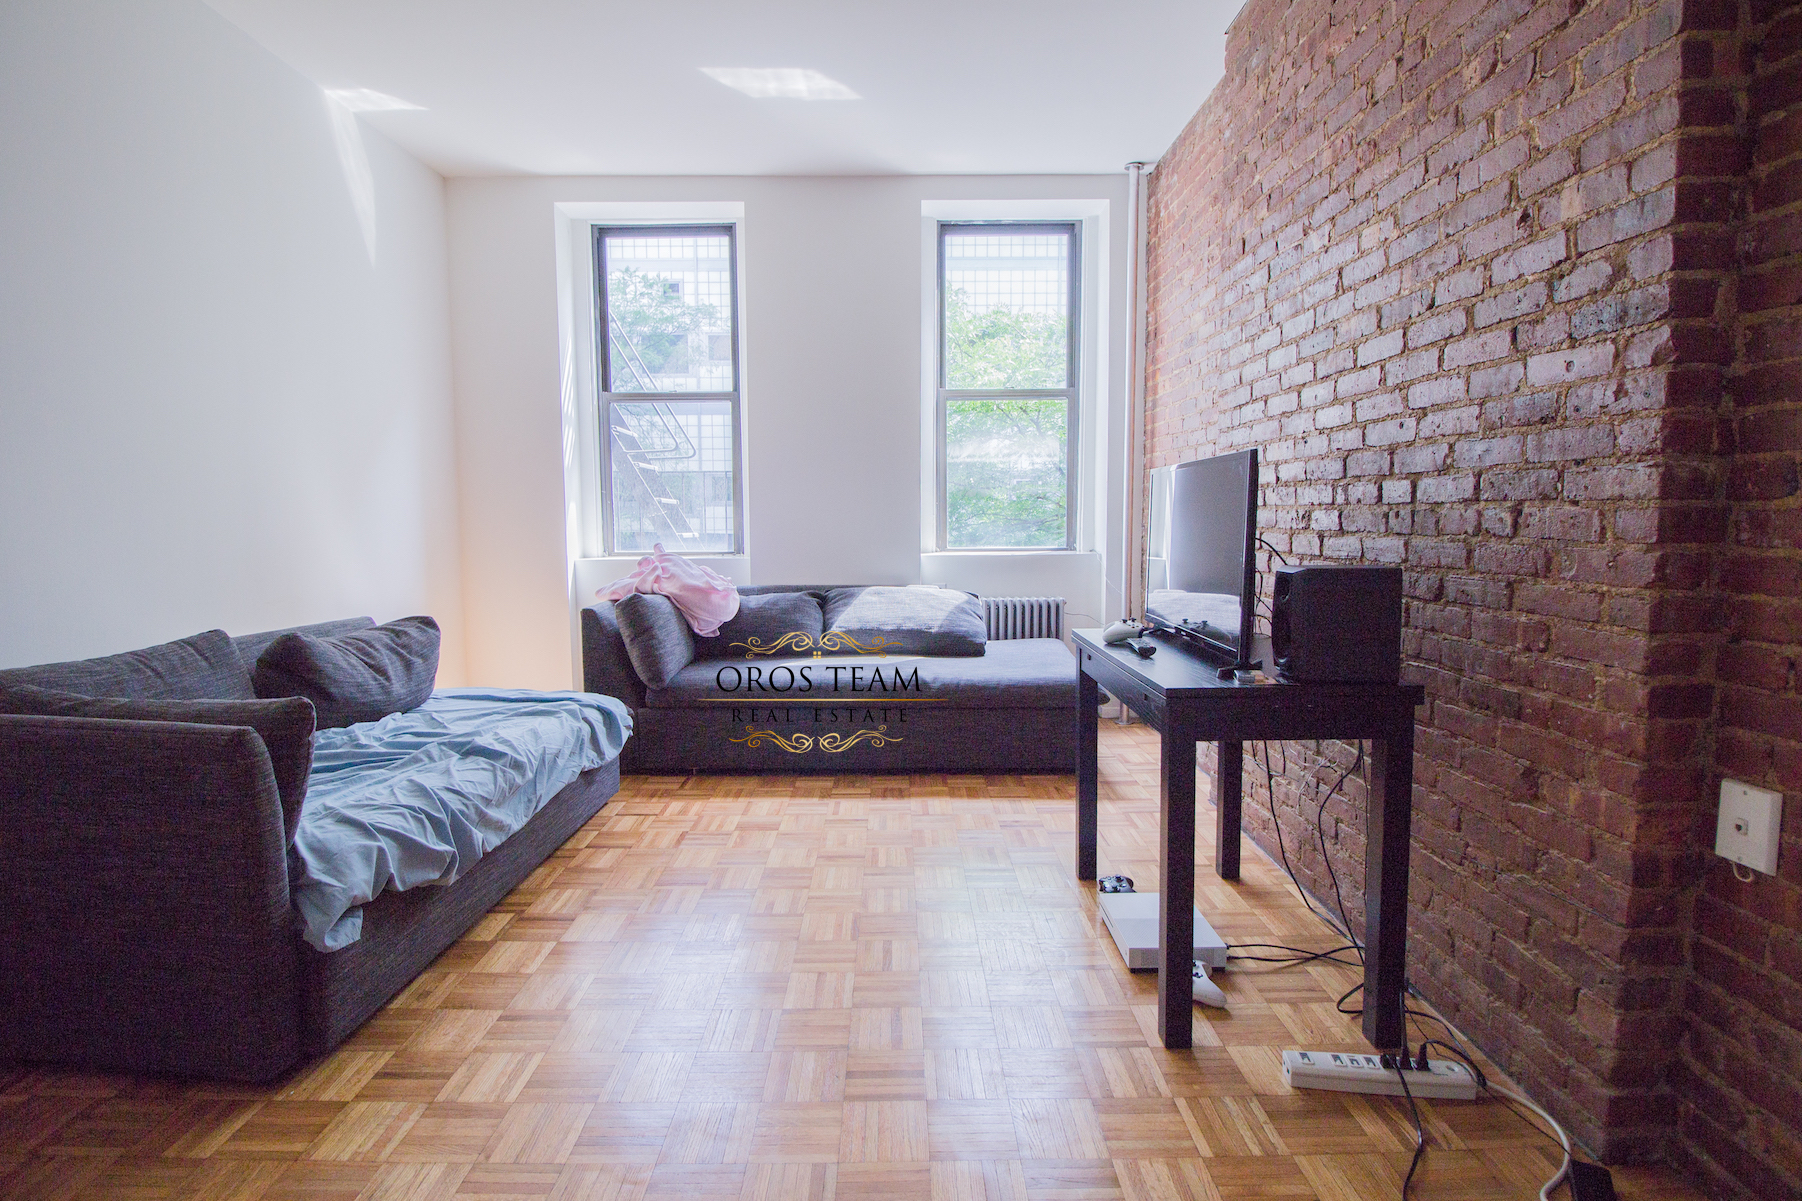 411 West 50th Street #2B - Nicely Renovated Kitchen with stainless steel appliances and microwave, newly renovated bath, hardwood floors, exposed brick and high ceilings. Southern exposure provide great light. Sorry, no pets or smoking.Rent: $1,950 /monthTerms: 12 - 12 MonthsAvailable: July 1st